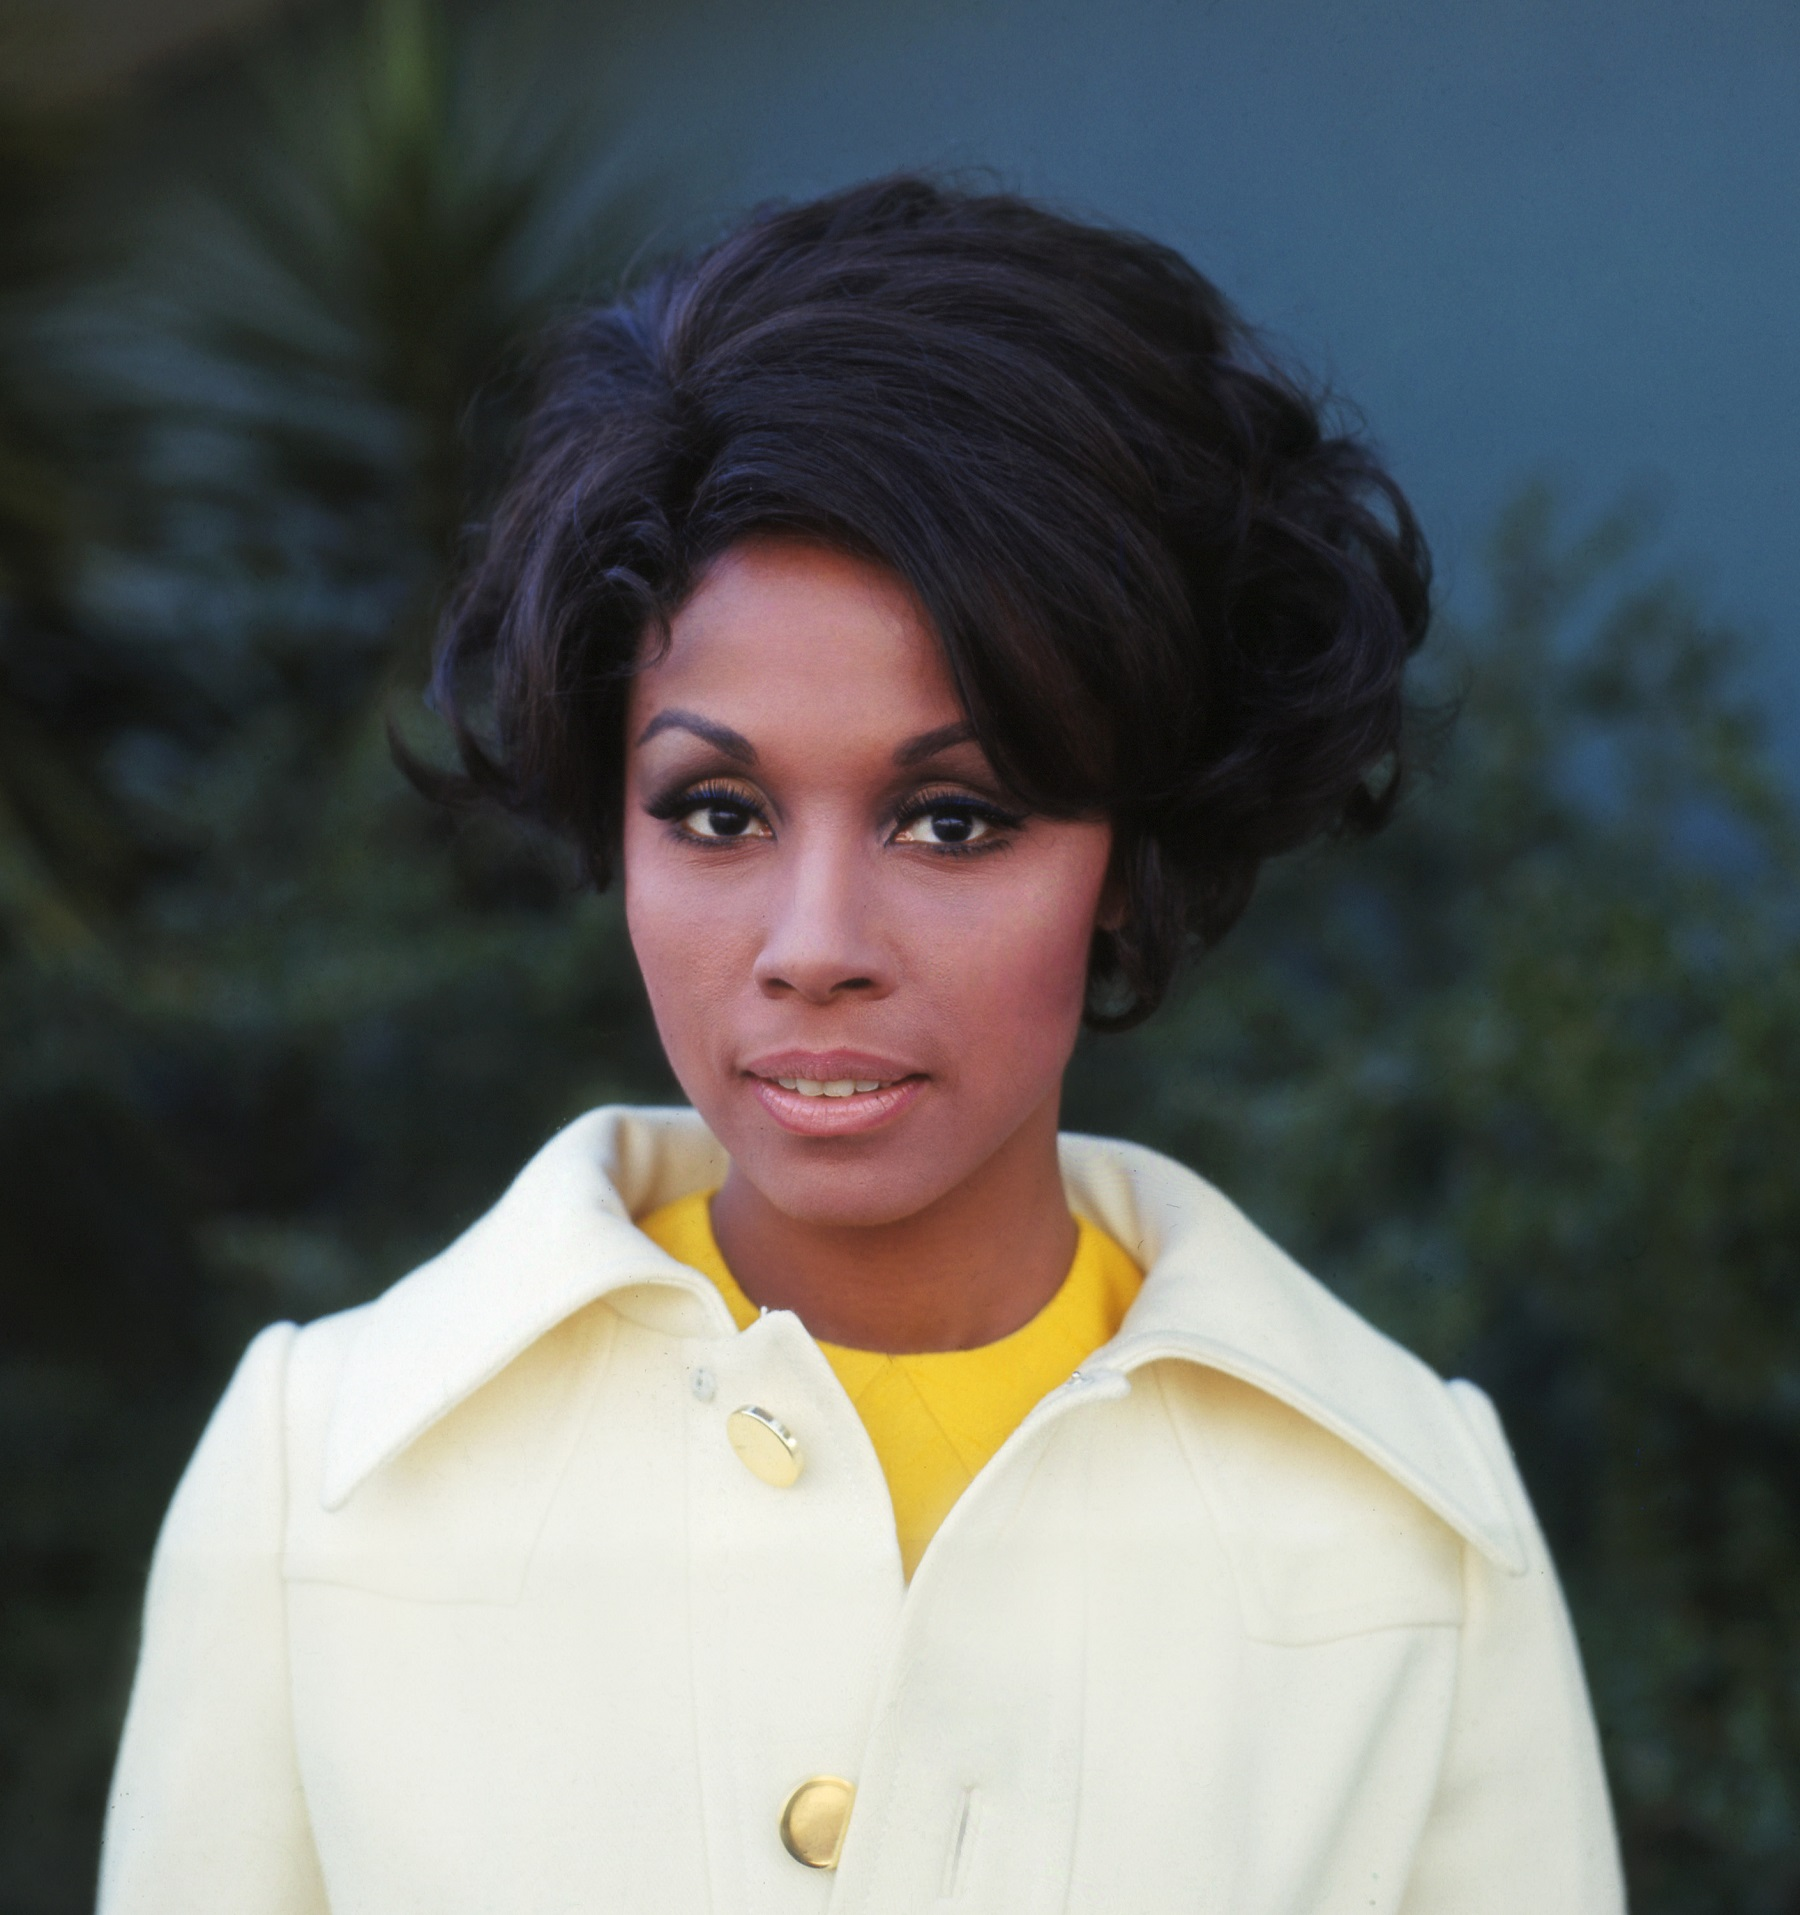 'Dynasty' actress Diahann Carroll (84) dies